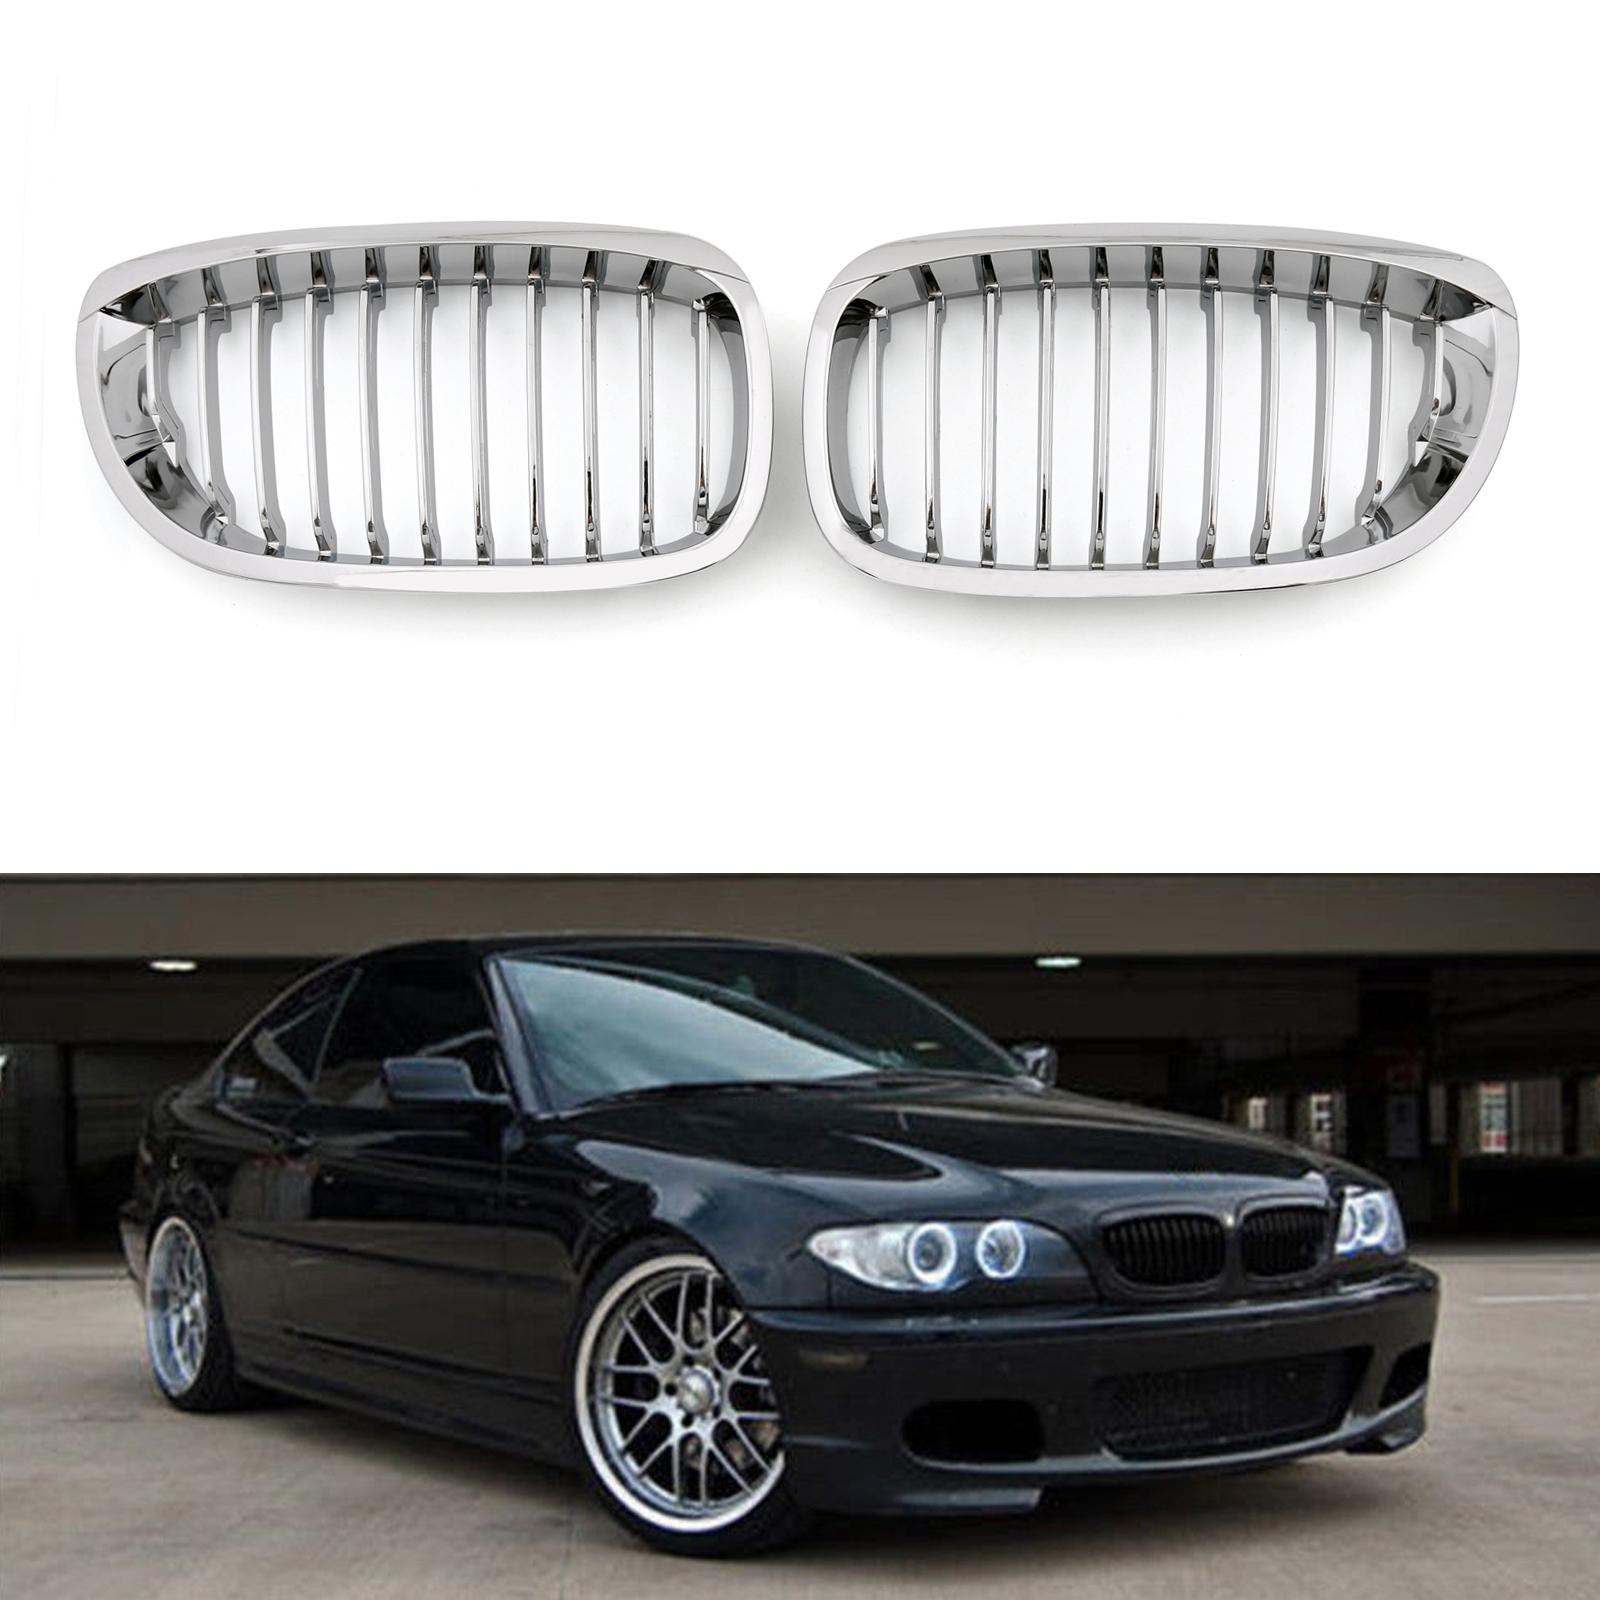 Areyourshop Front Fence Grill Grille ABS Chrome Mesh Fit For BMW E46 2D 2002-2007 3 Series Car Auto Accessories Parts